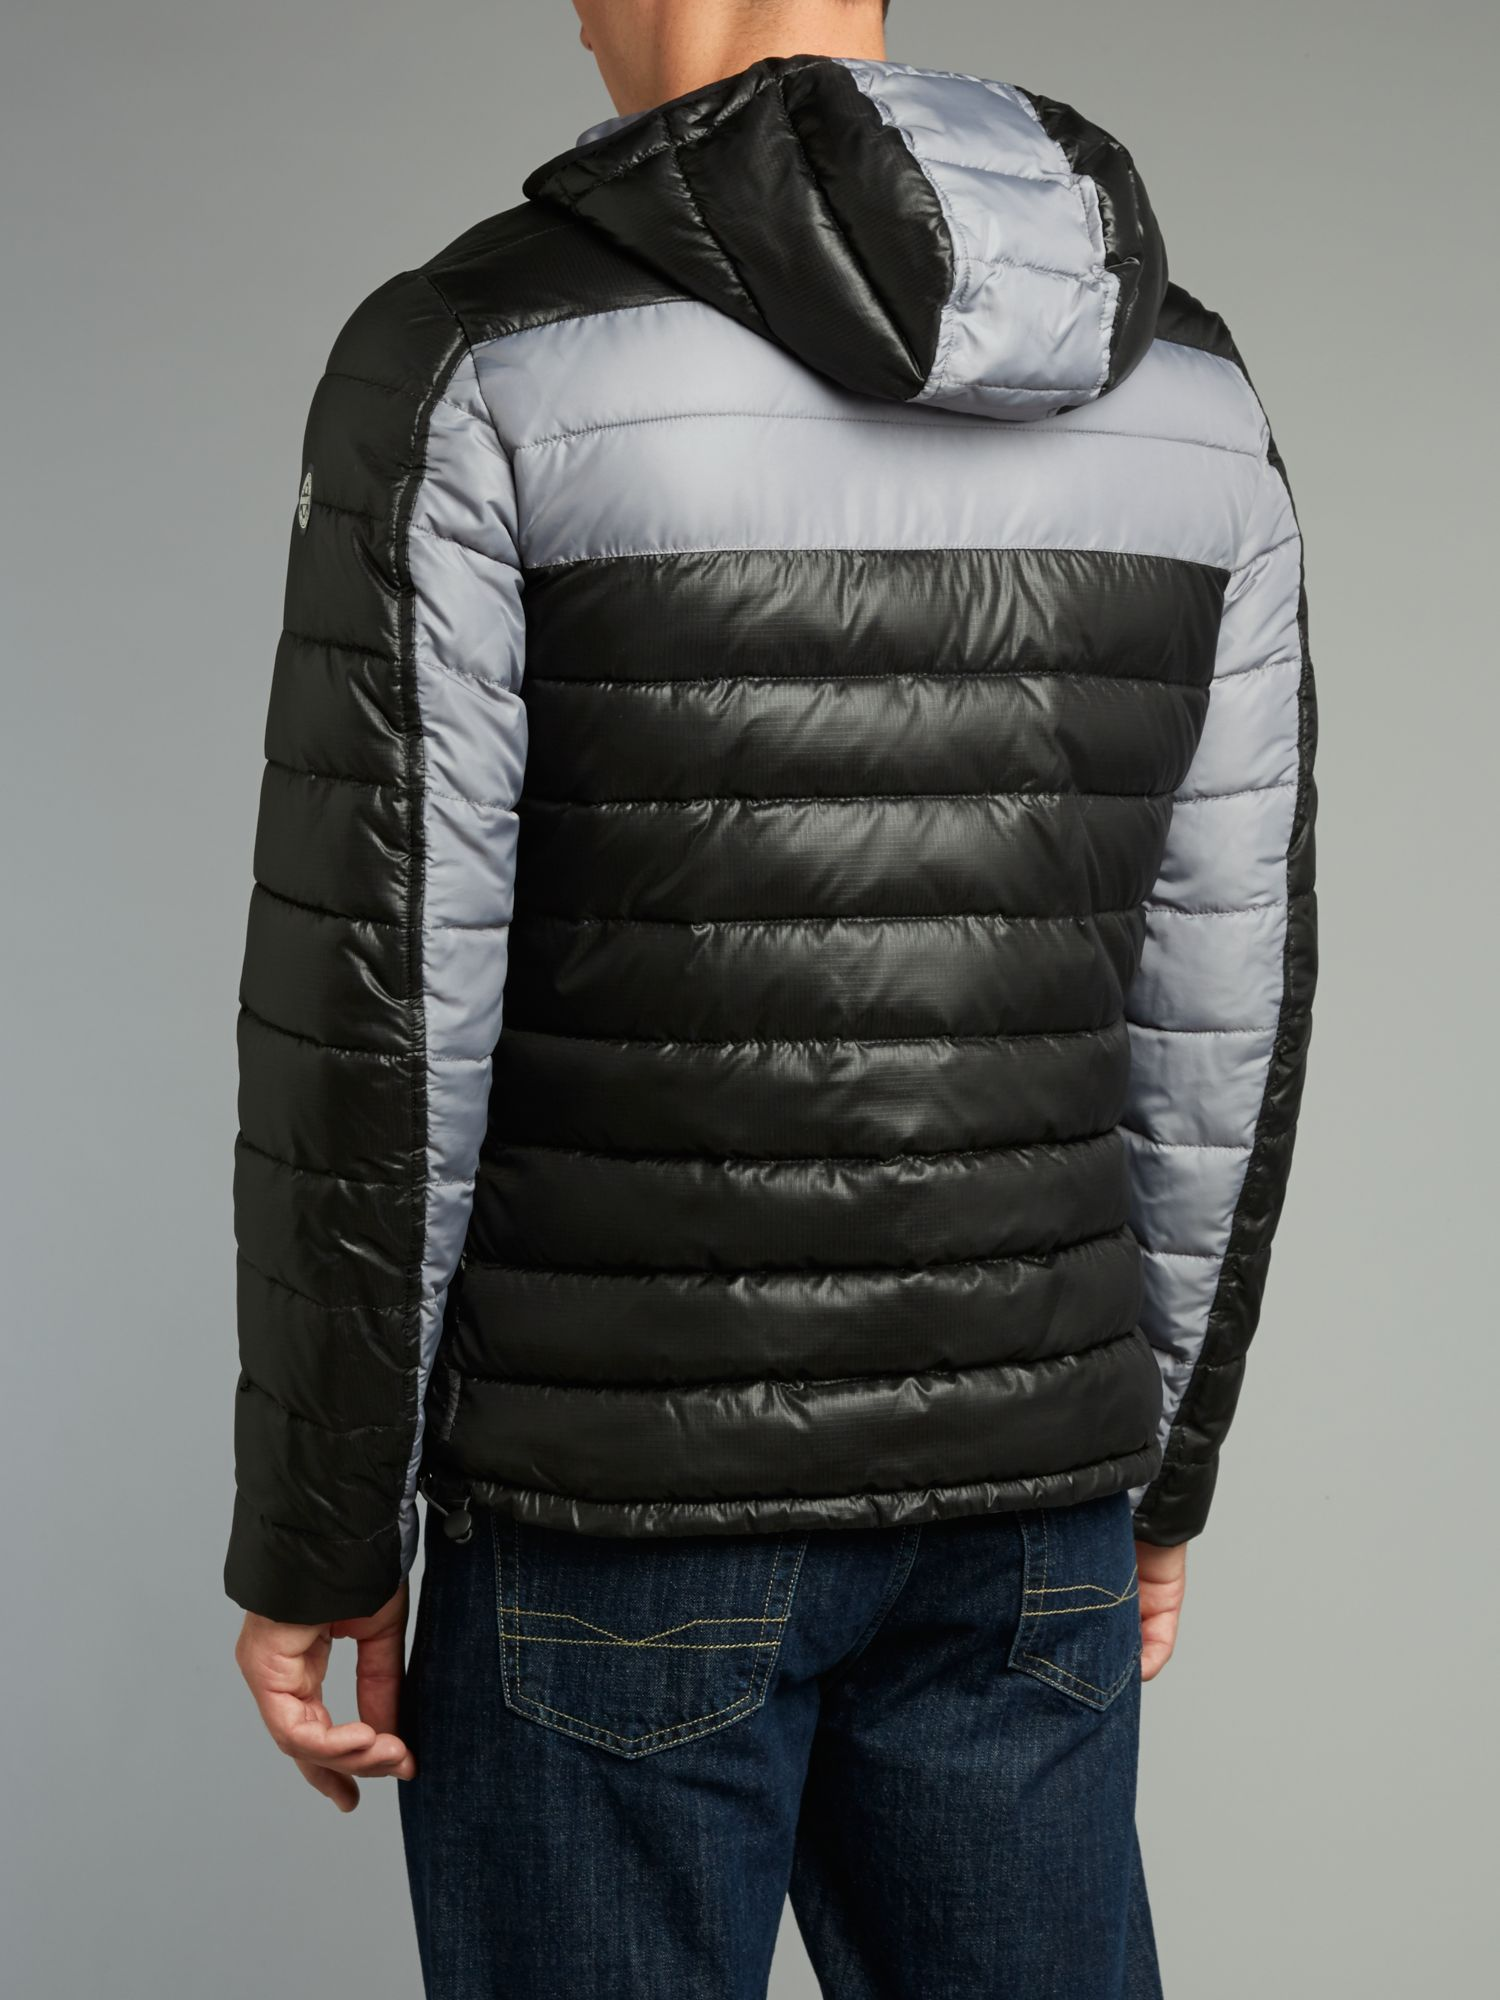 Armani jeans Reversible Quilted Jacket in Black for Men   Lyst : armani jeans quilted jacket - Adamdwight.com